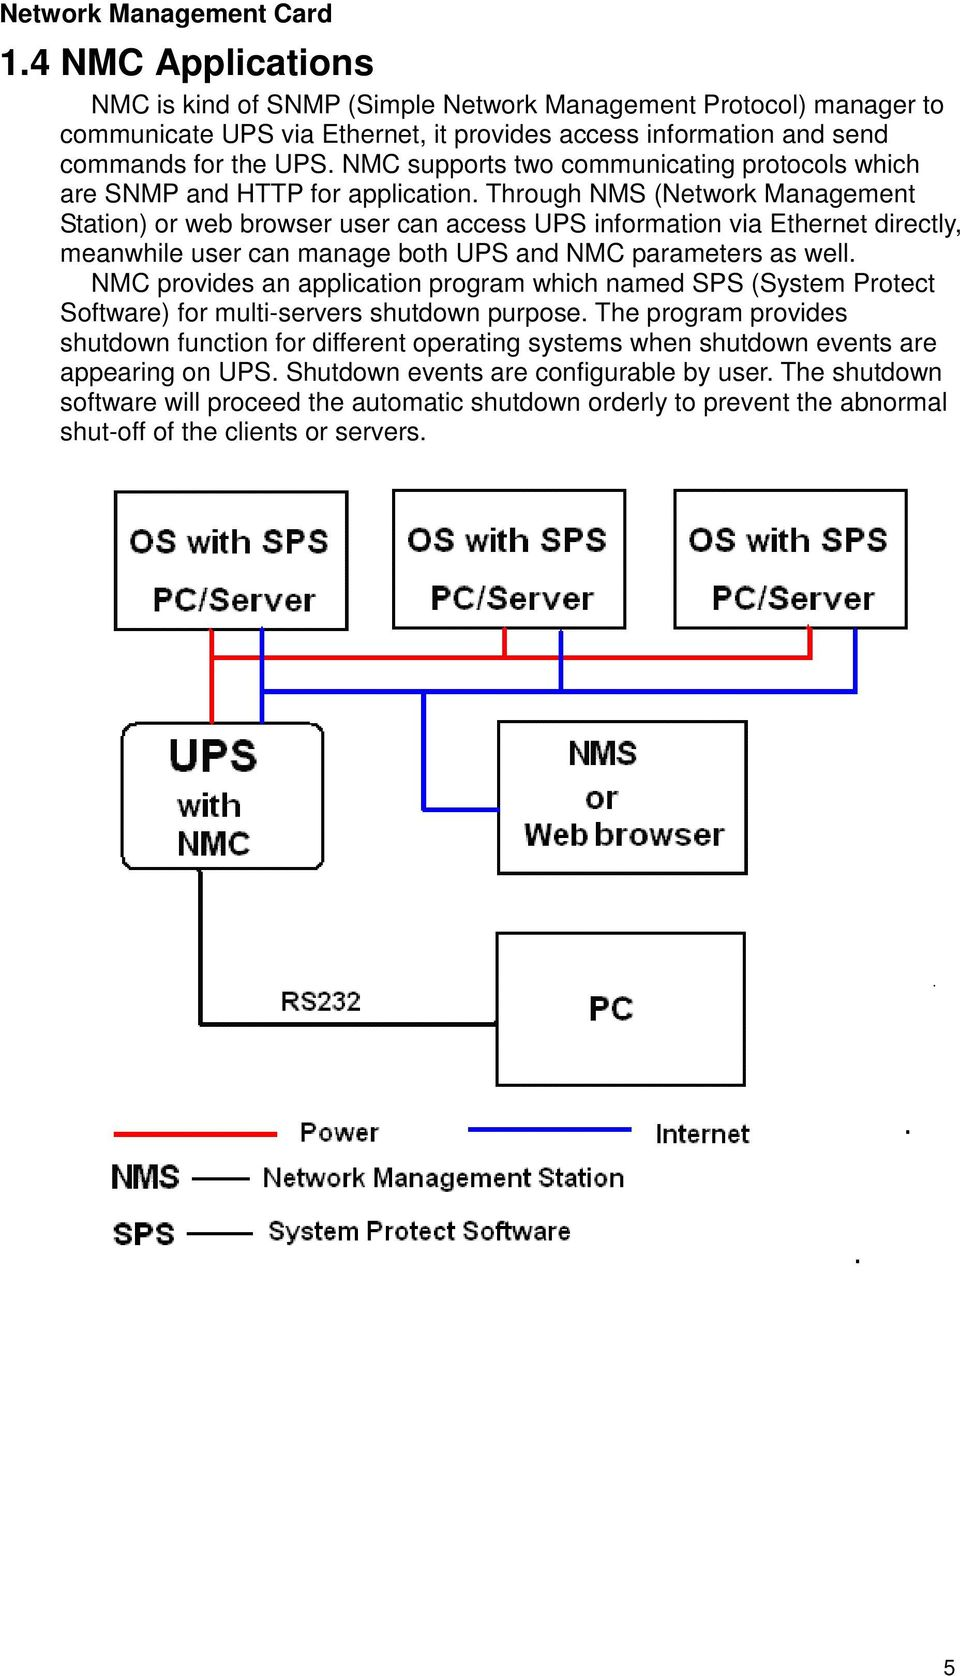 Through NMS (Network Management Station) or web browser user can access UPS information via Ethernet directly, meanwhile user can manage both UPS and NMC parameters as well.